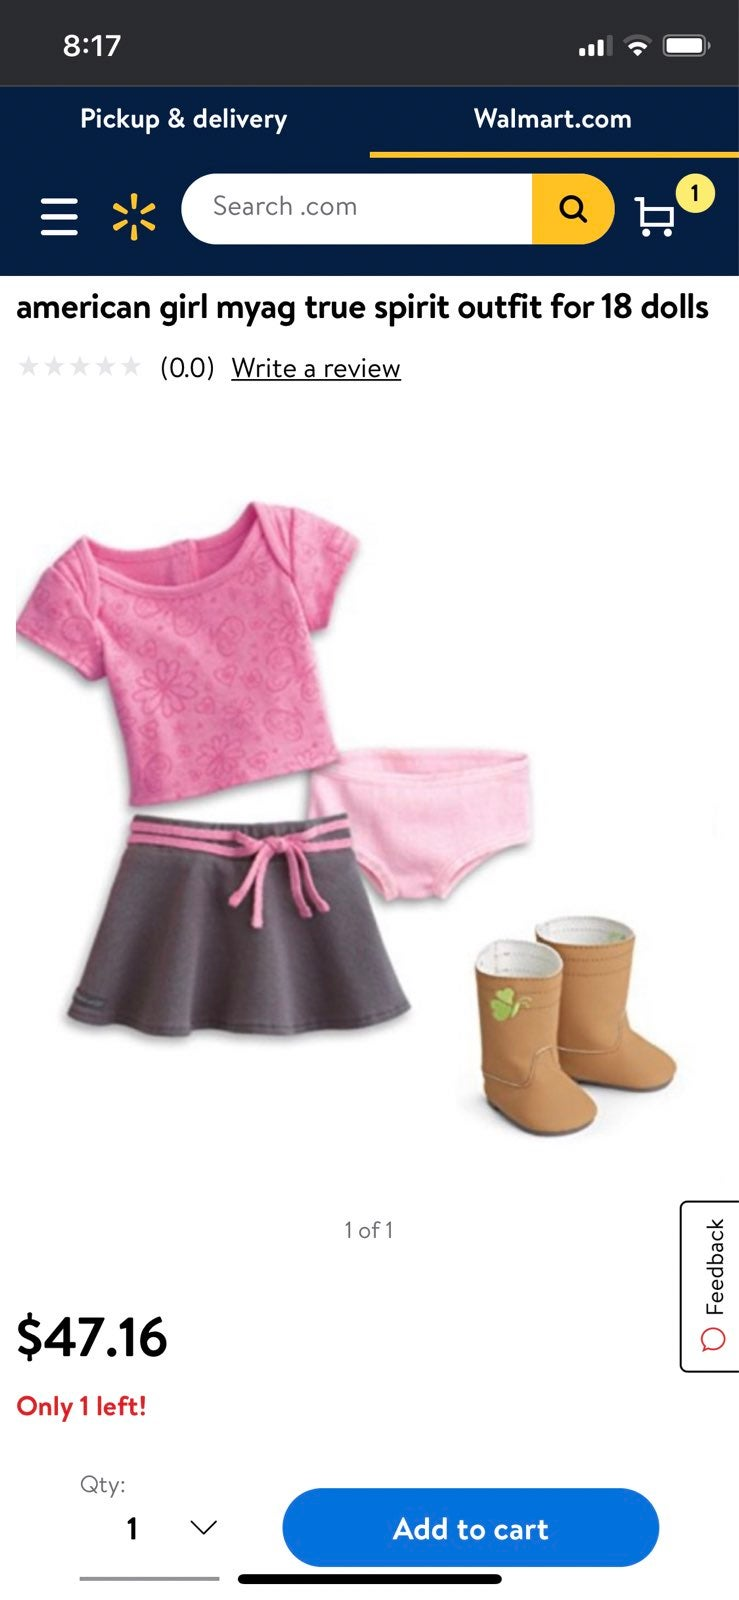 American girl true spirit outfit NEW in